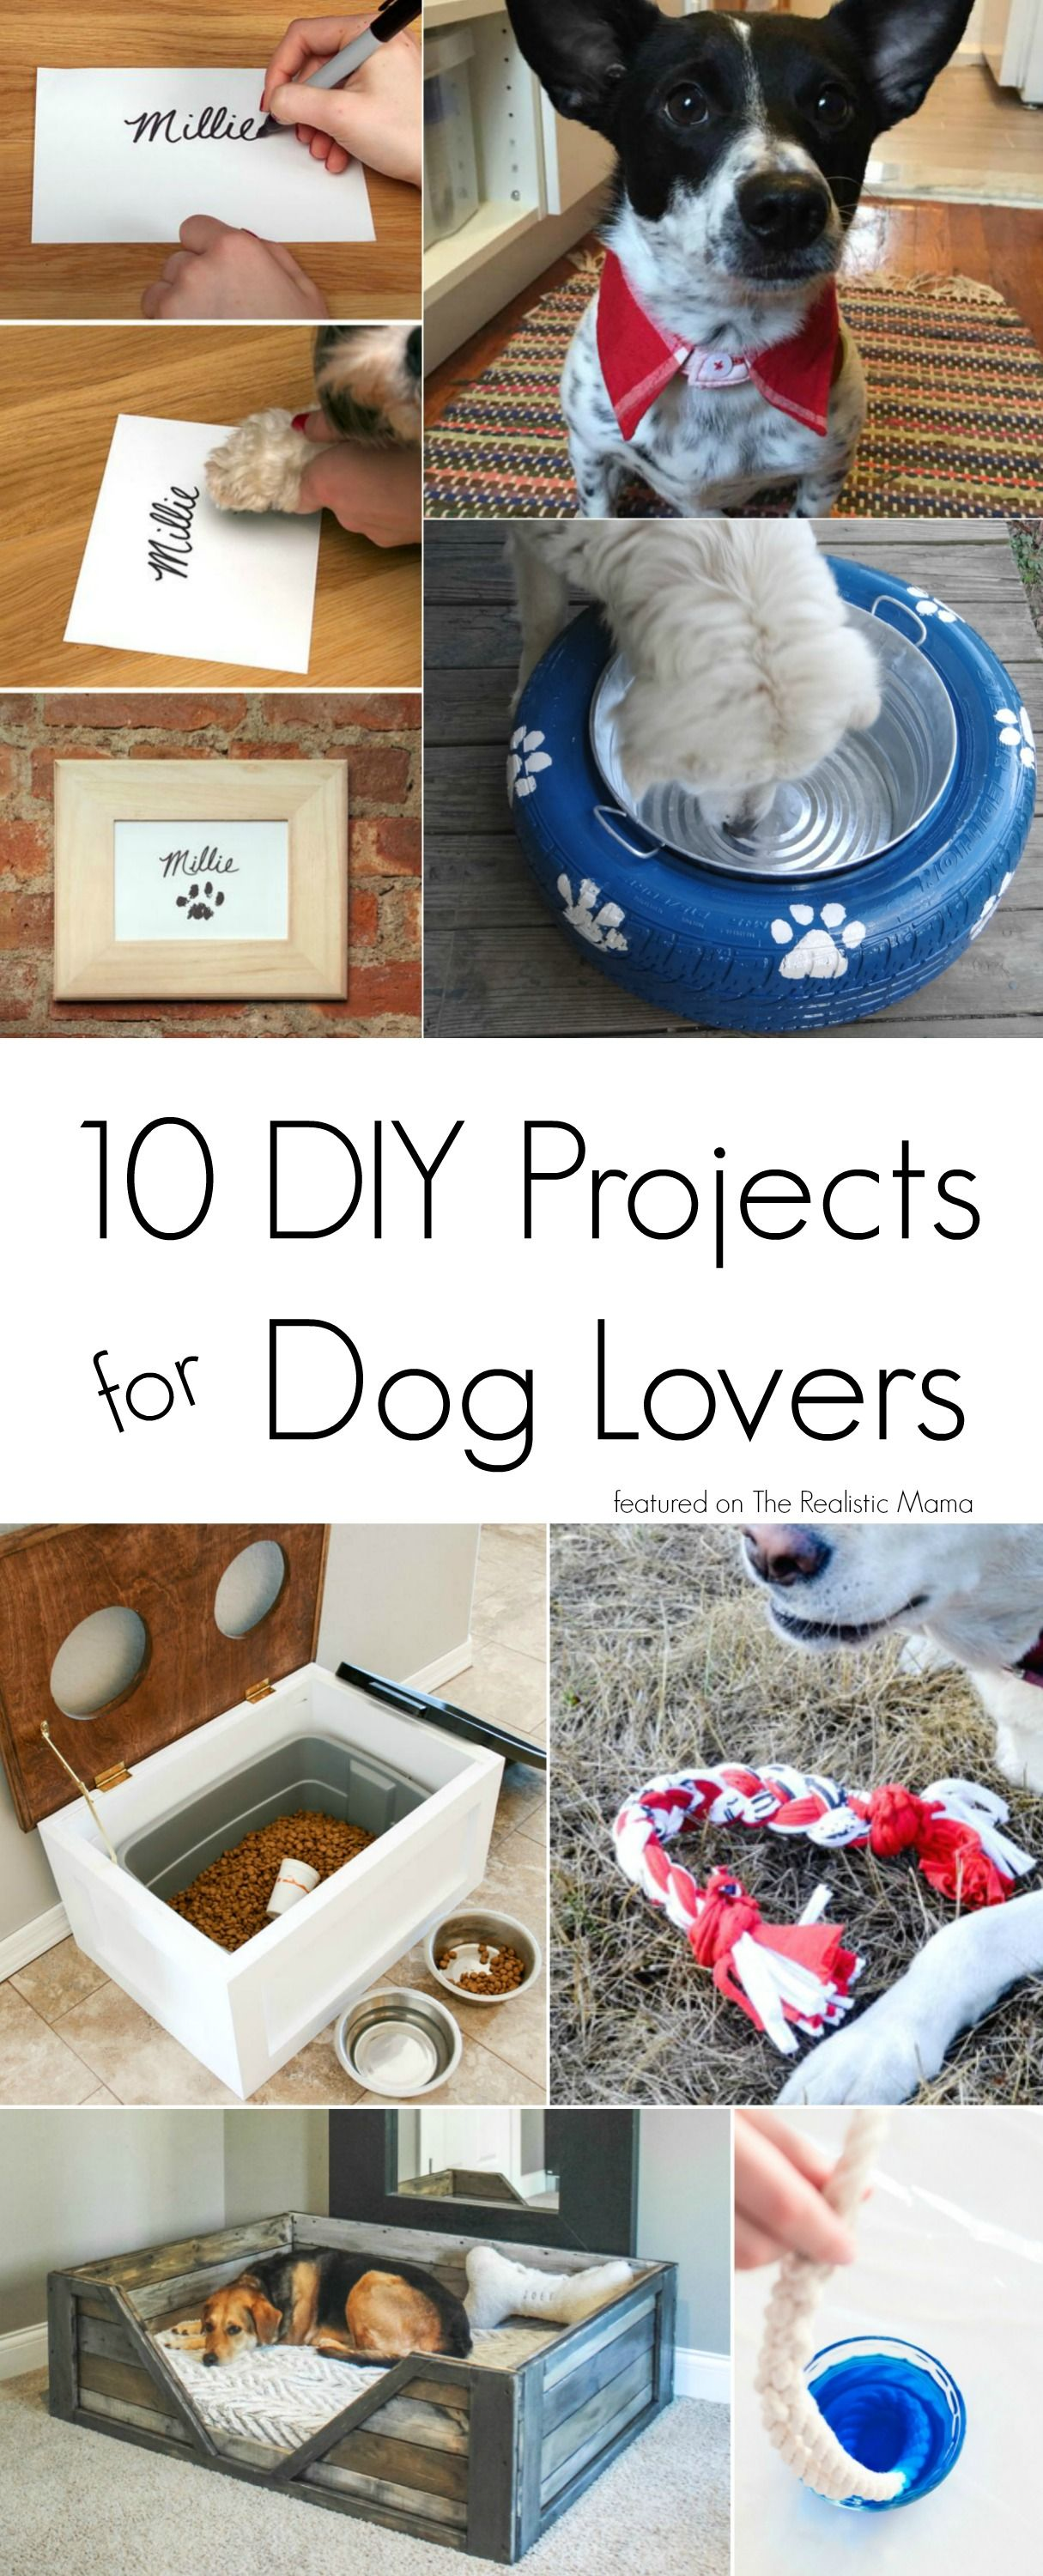 10 DIY Projects for Dog Lovers | Dog stuff | Diy projects ...